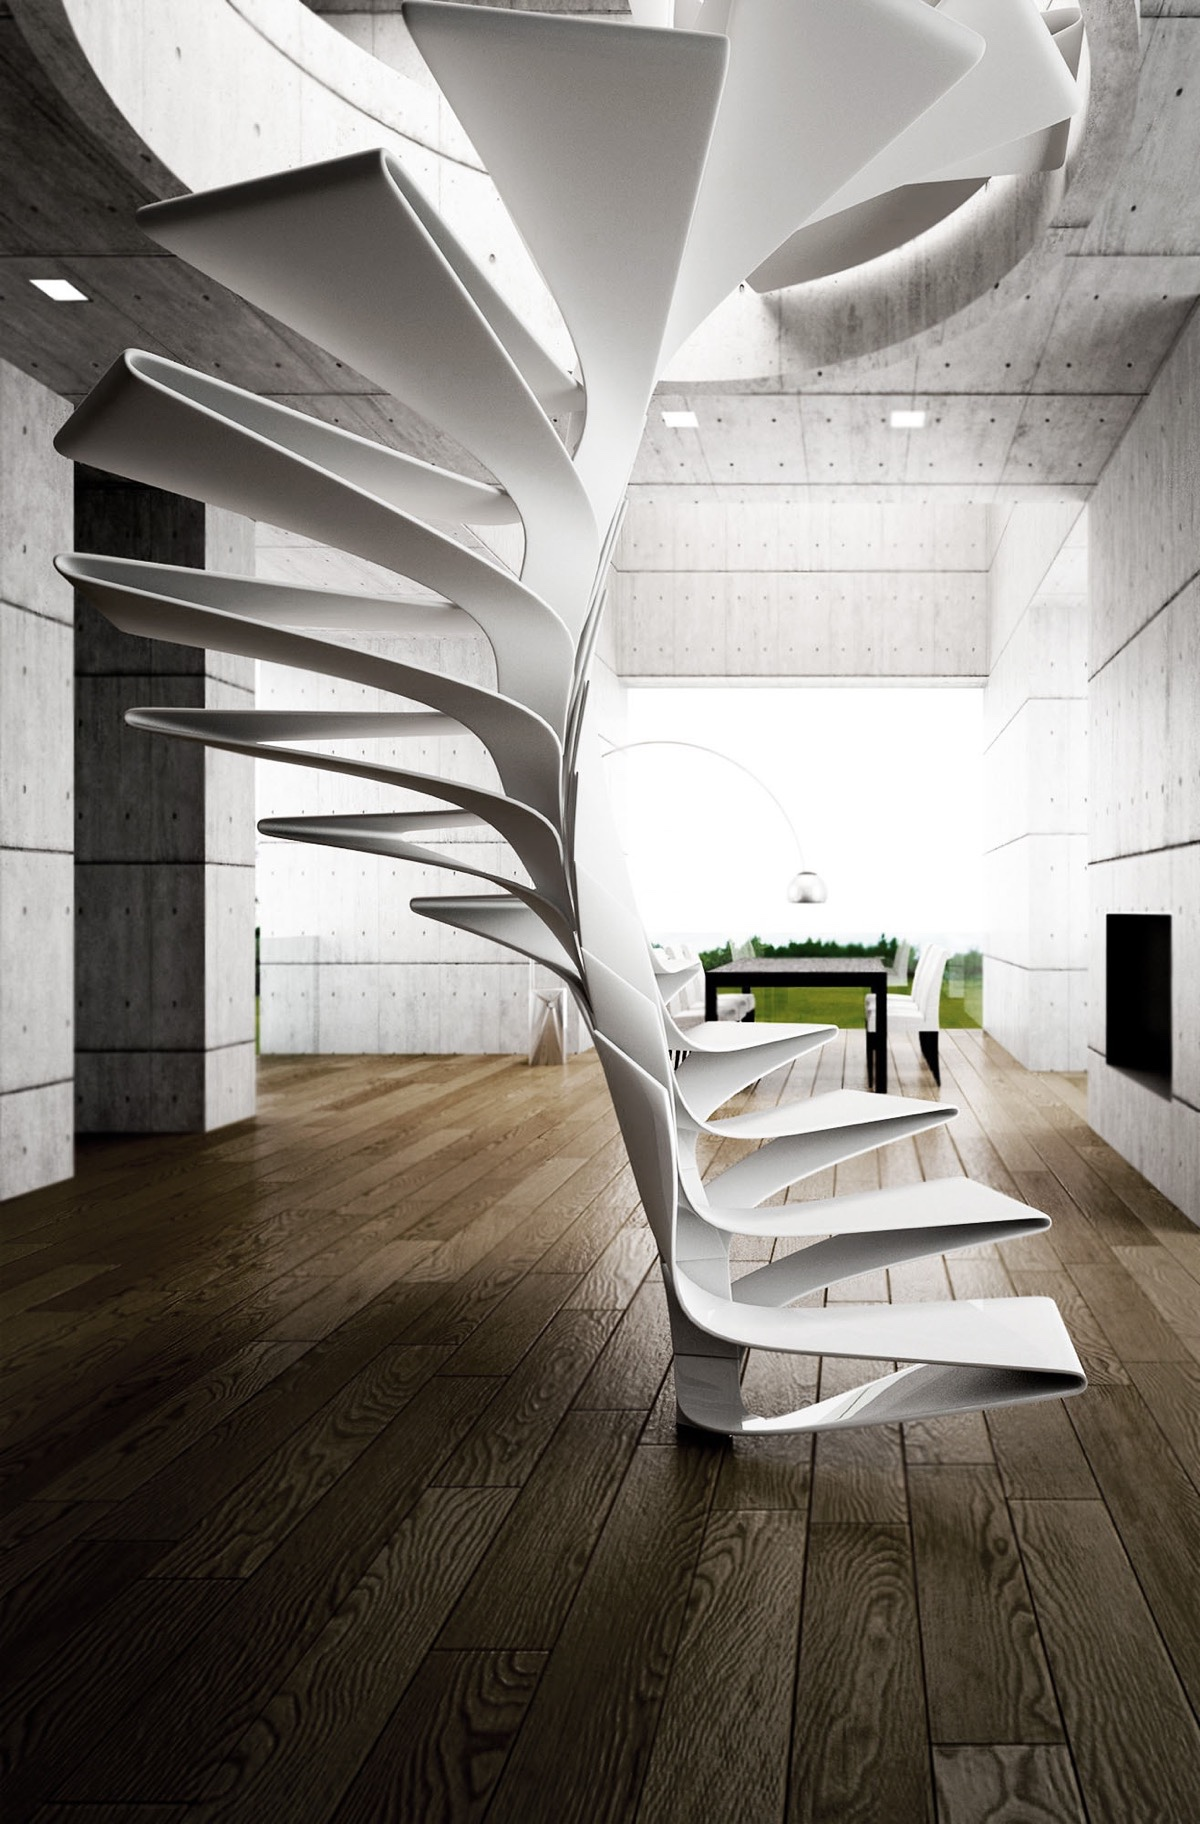 Step Design: 25 Unique Staircase Designs To Take Center Stage In Your Home